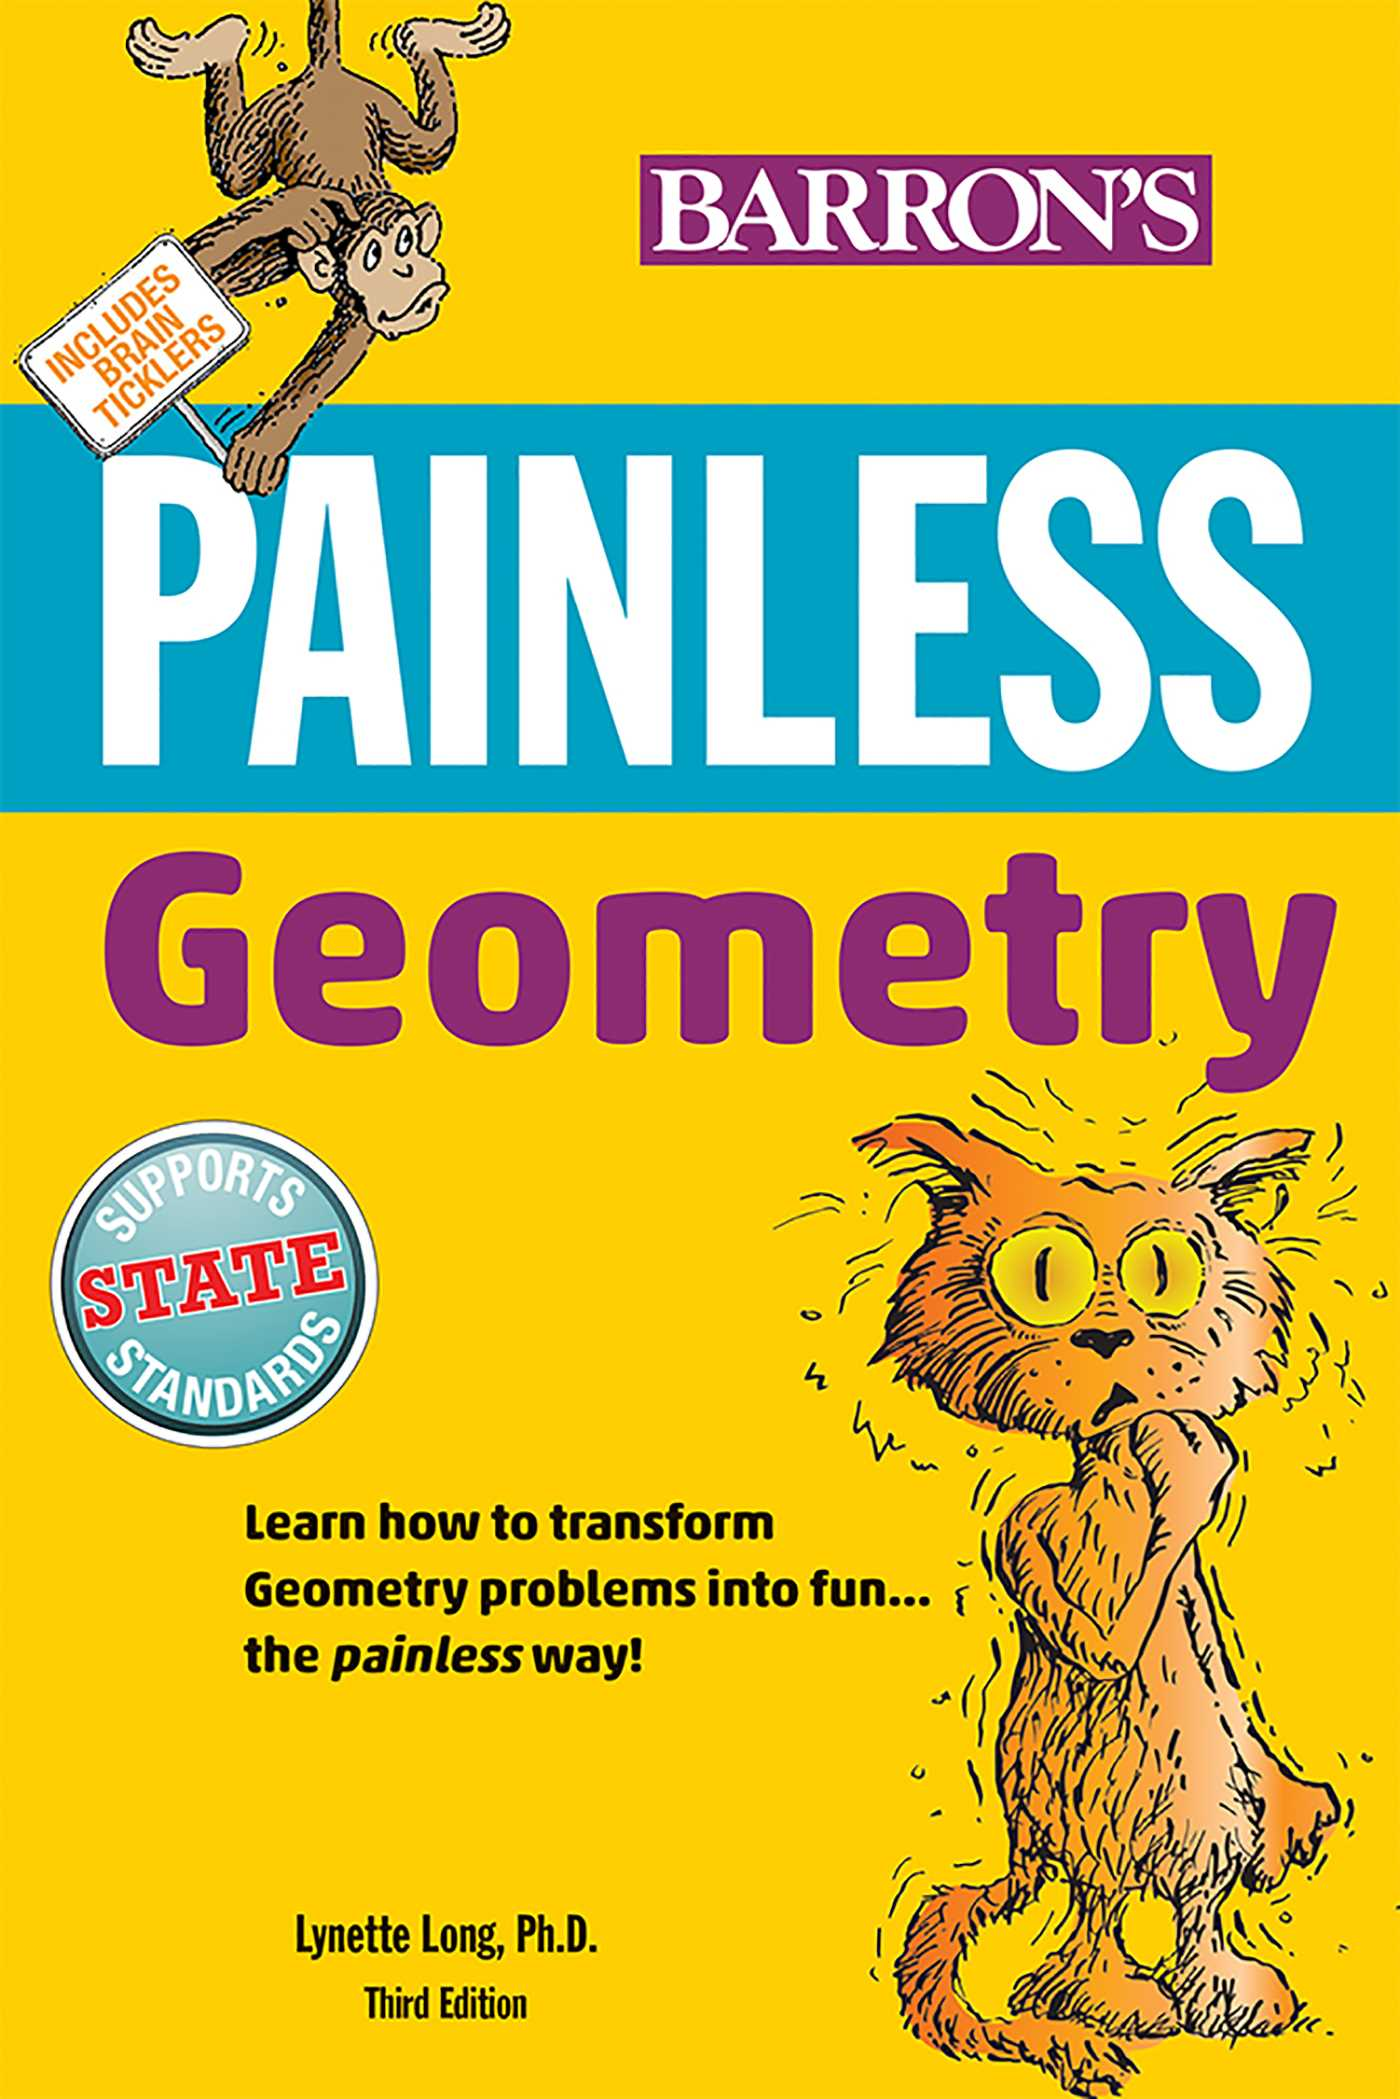 Painless Geometry   Book by Lynette Long Ph D    Official